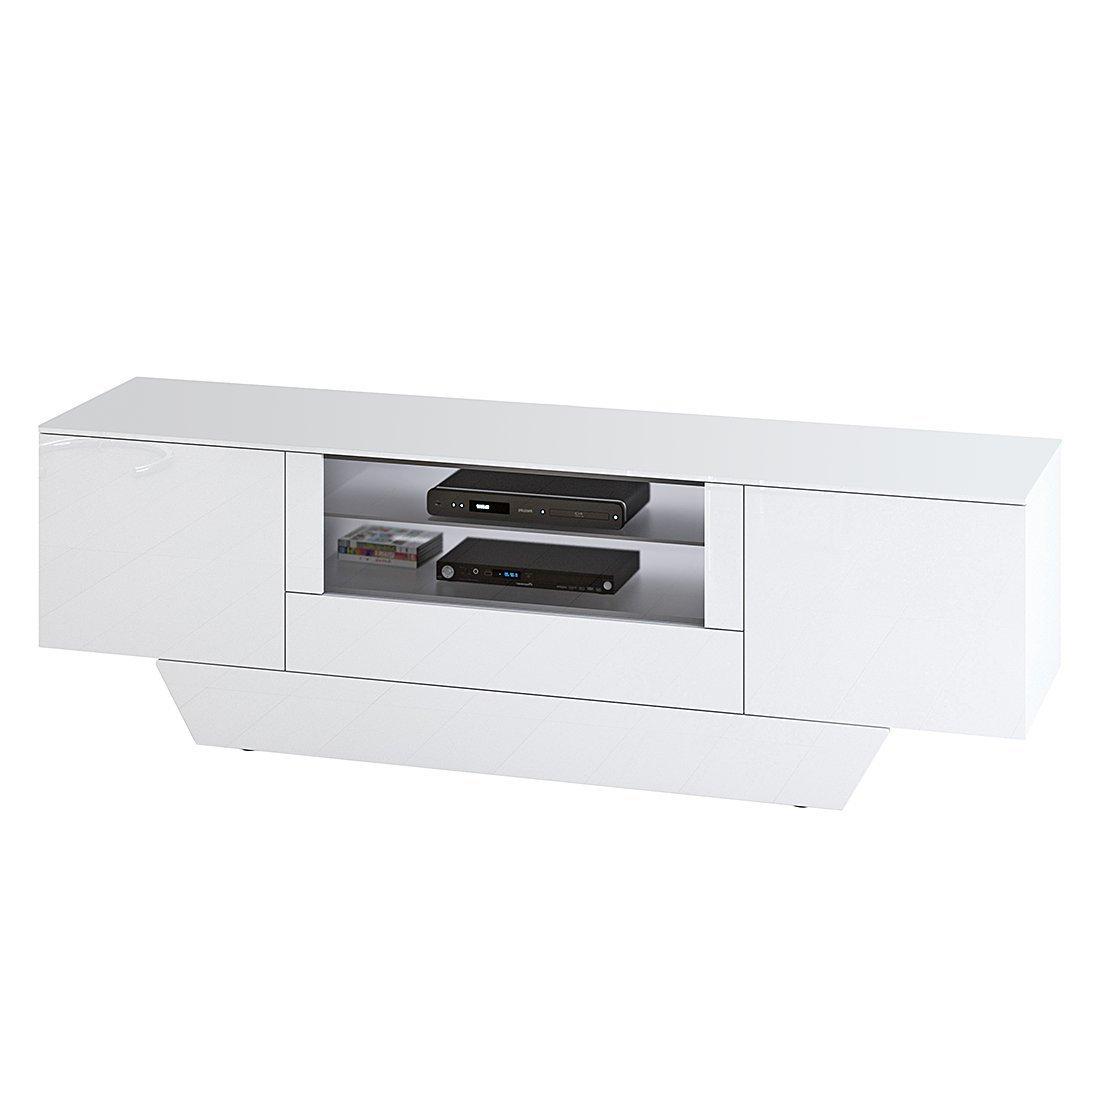 jahnke tv rack Jahnke Studio Rack 2100 SV (M) HG WS-WS T.1-3 TV Stand Chipboard, Melamine  Coated Tempered Safety Glass, Polished White, 213 x 45.5 x 68 cm: Jahnke:  ...